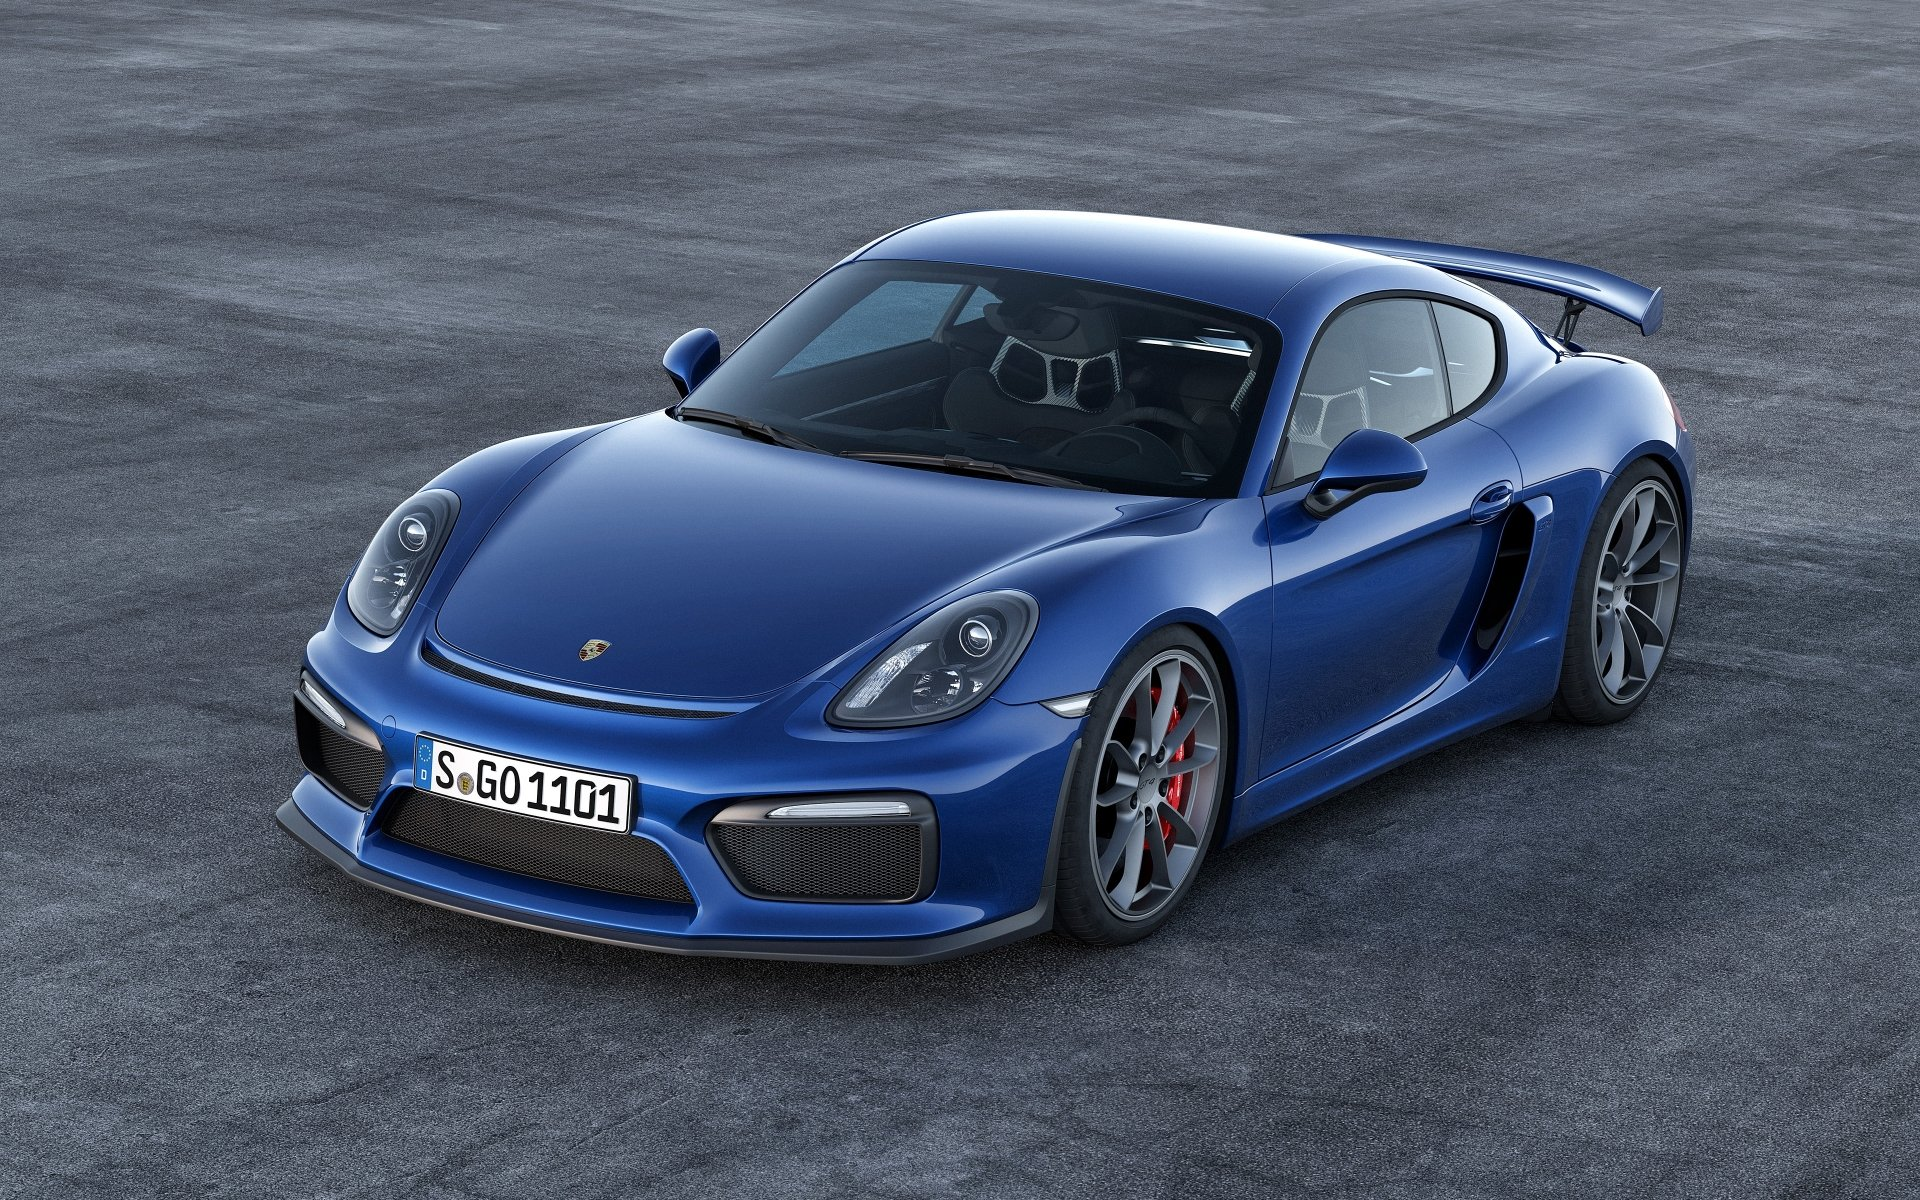 Vehicles - Porsche Cayman GT4  Car Porsche Vehicle Sport Car Blue Car Porsche Cayman Wallpaper